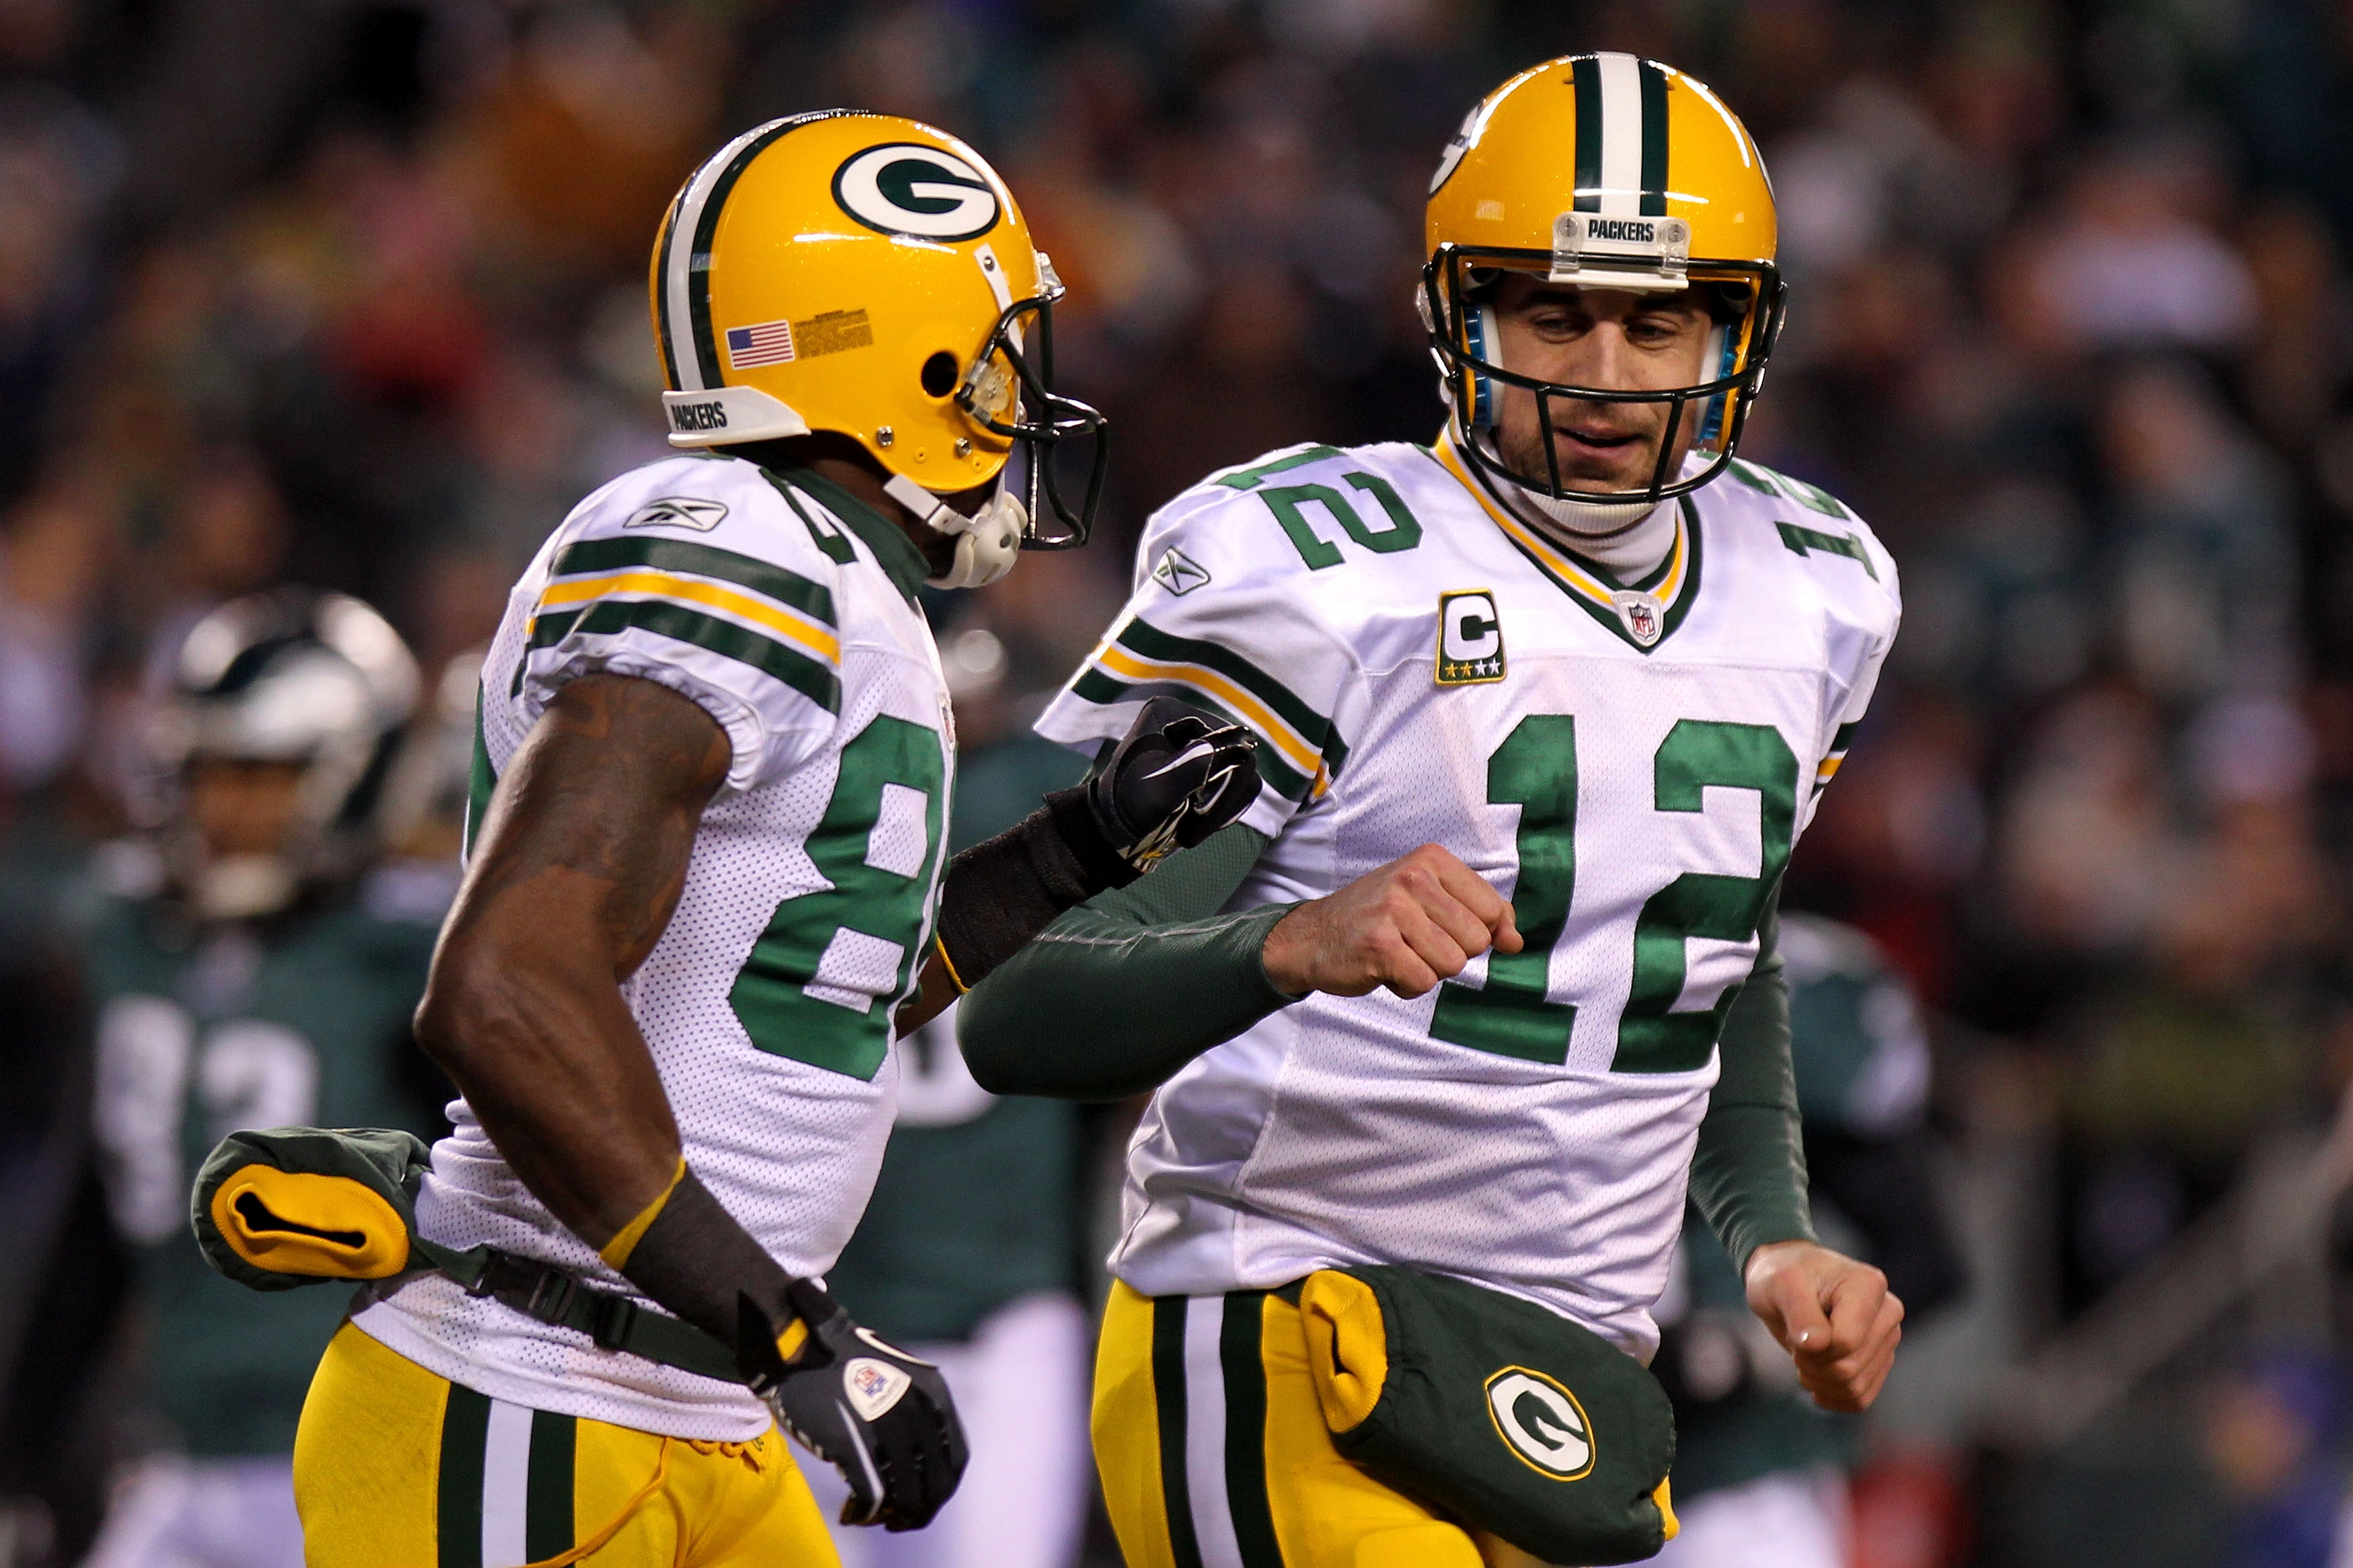 PHILADELPHIA, PA - JANUARY 09:  Aaron Rodgers #12 of the Green Bay Packers and Donald Driver #80 celebrate after a touchdown in the first quarter against the Philadelphia Eagles during the 2011 NFC wild card playoff game at Lincoln Financial Field on Janu